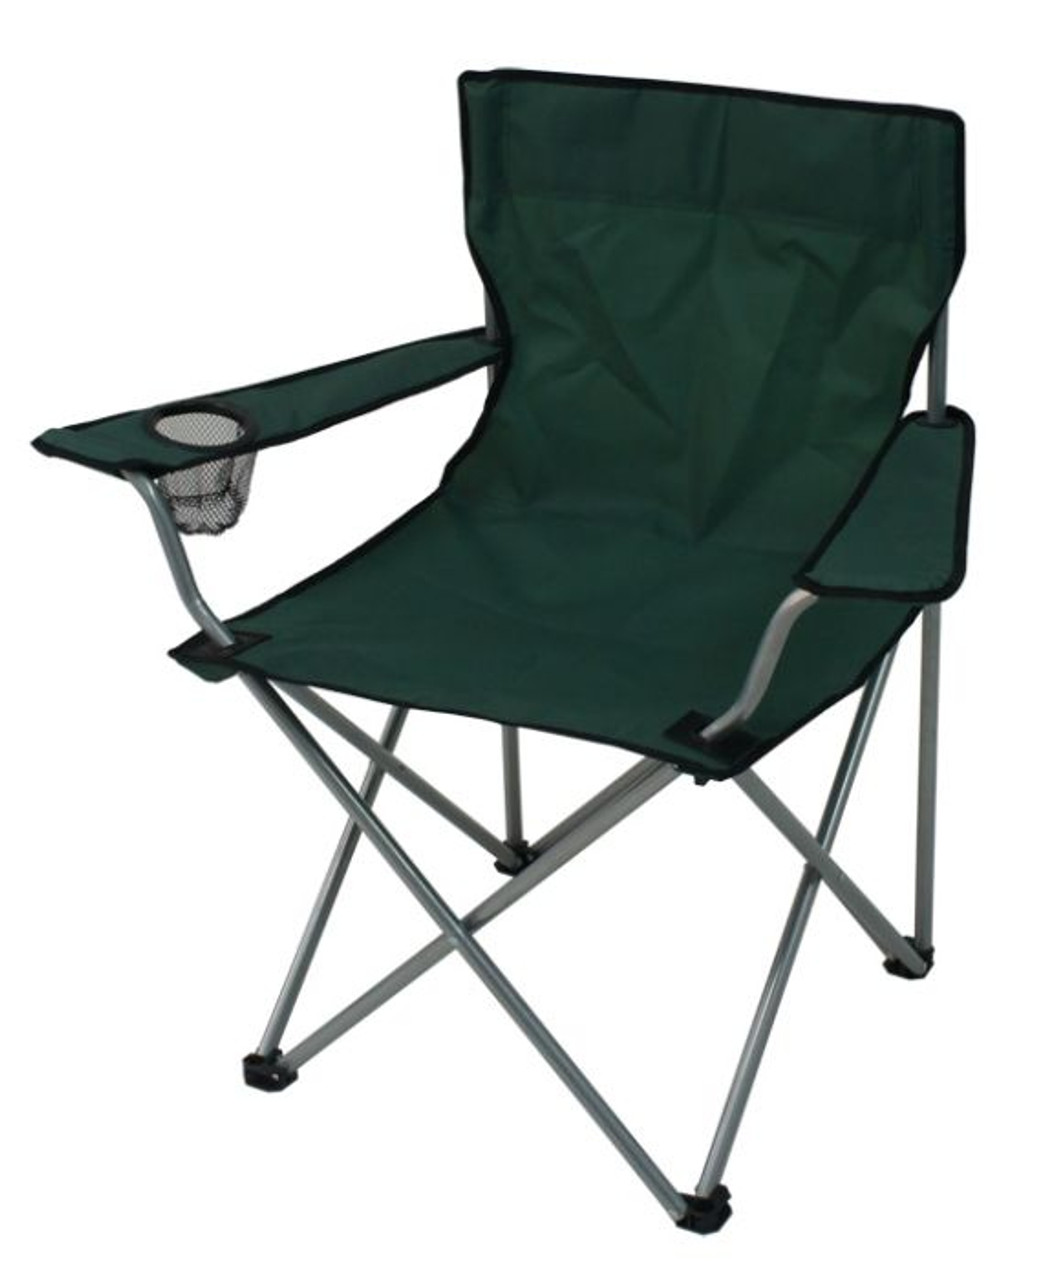 Camping Chair With Drink Holder